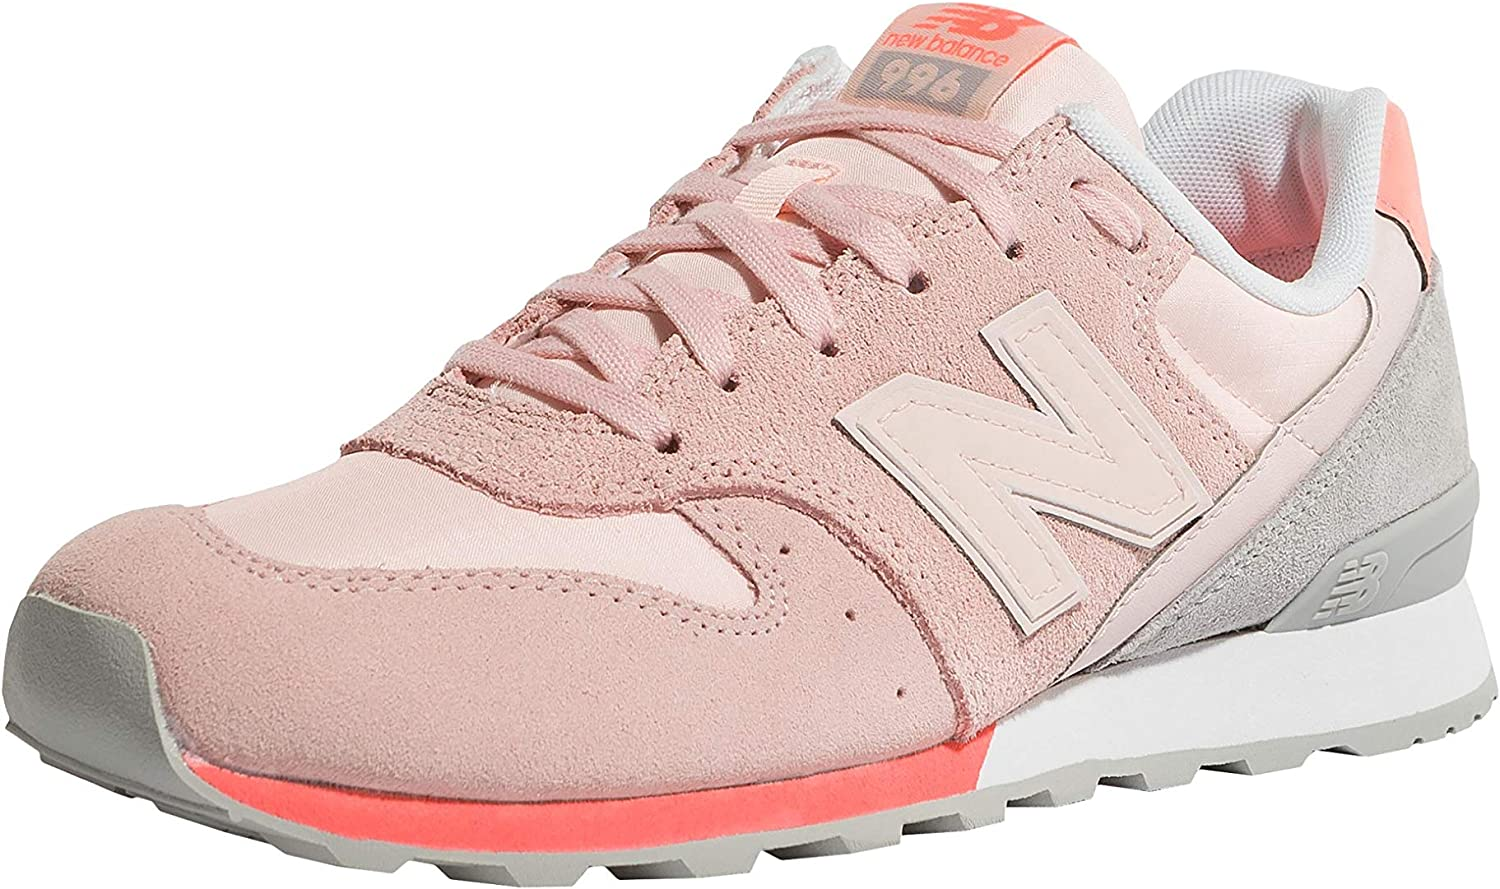 New Balance - 996 - color  Pink - Size  6.5US